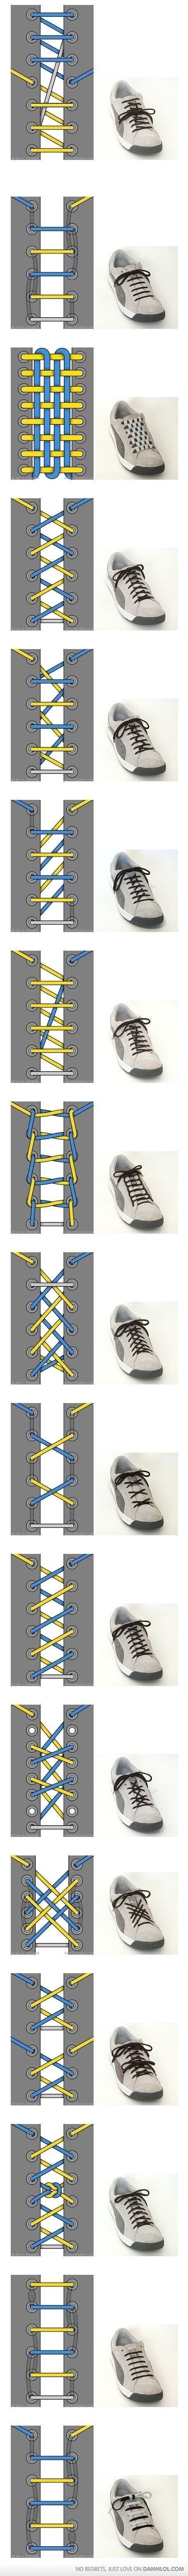 How to tie your shoes by Ian's Shoelace Site tinyurl.com/7xaxa via damnlol